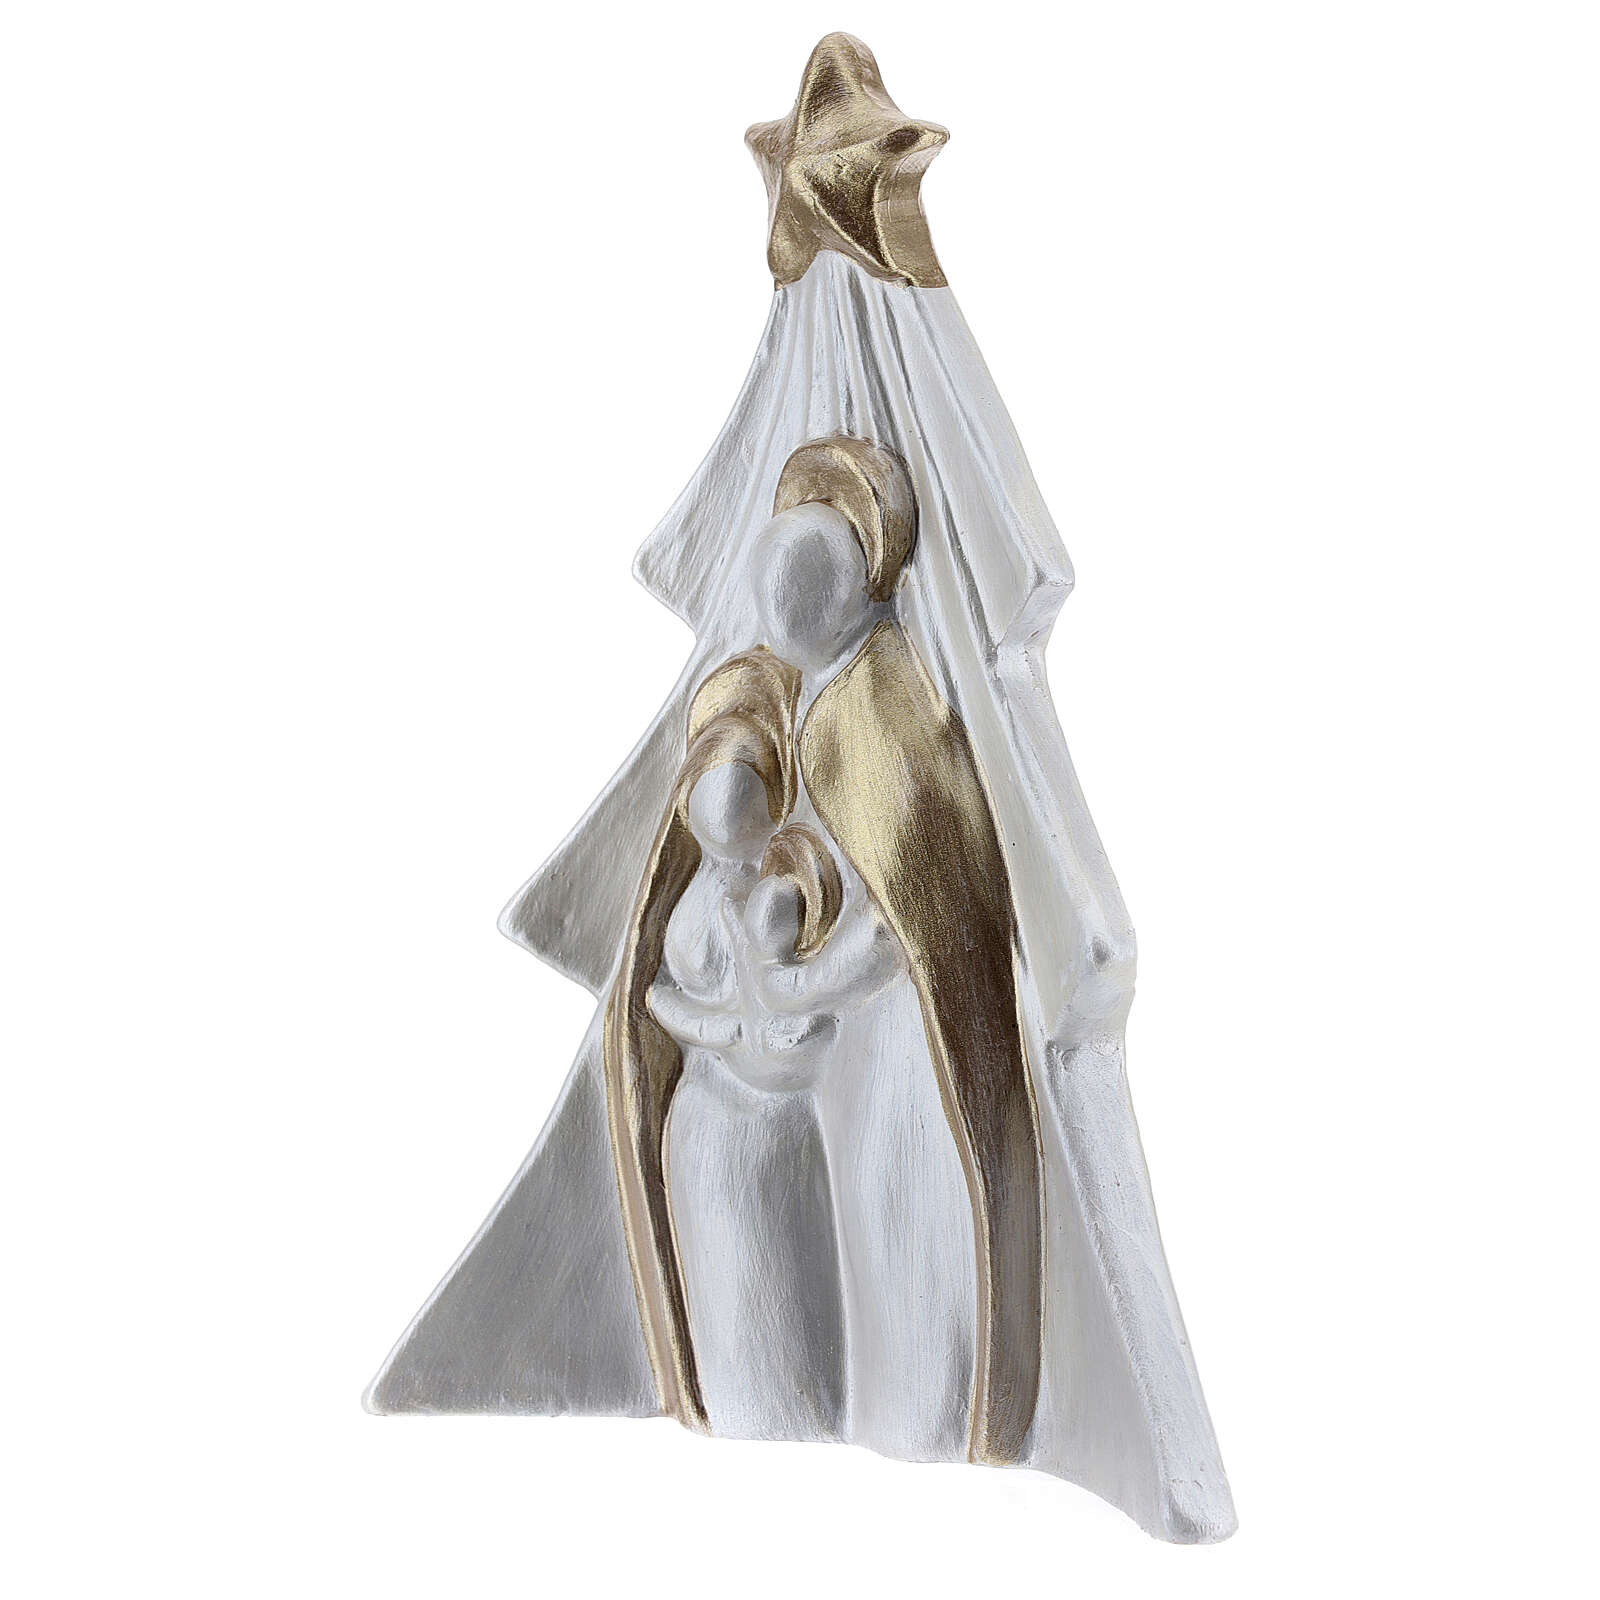 Holy Family Christmas decoration in white and gold Deruta terracotta 19 cm 4